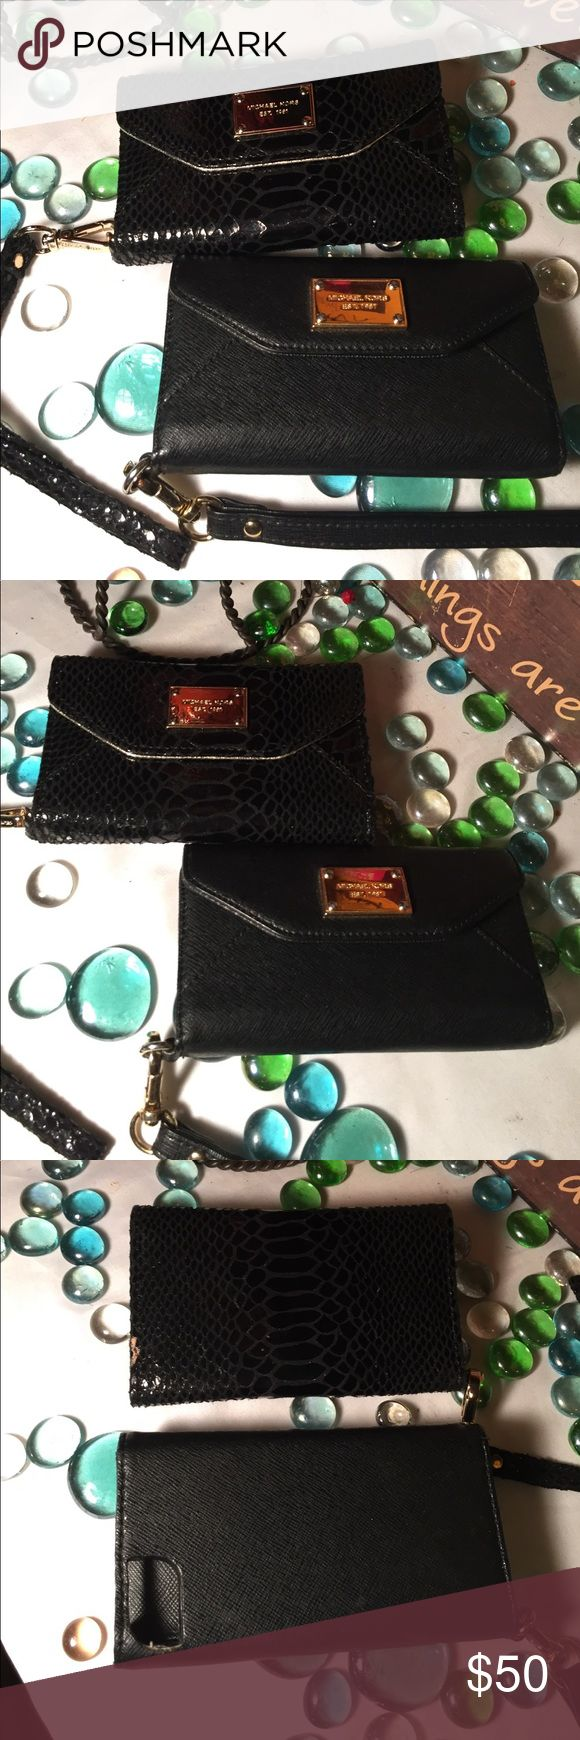 2 MICHAEL KORS iPhone 4 Cases 2 MICHAEL Kors Cases Bundle deal!Good condition- View all pics. Very nice! MICHAEL Michael Kors Accessories Phone Cases